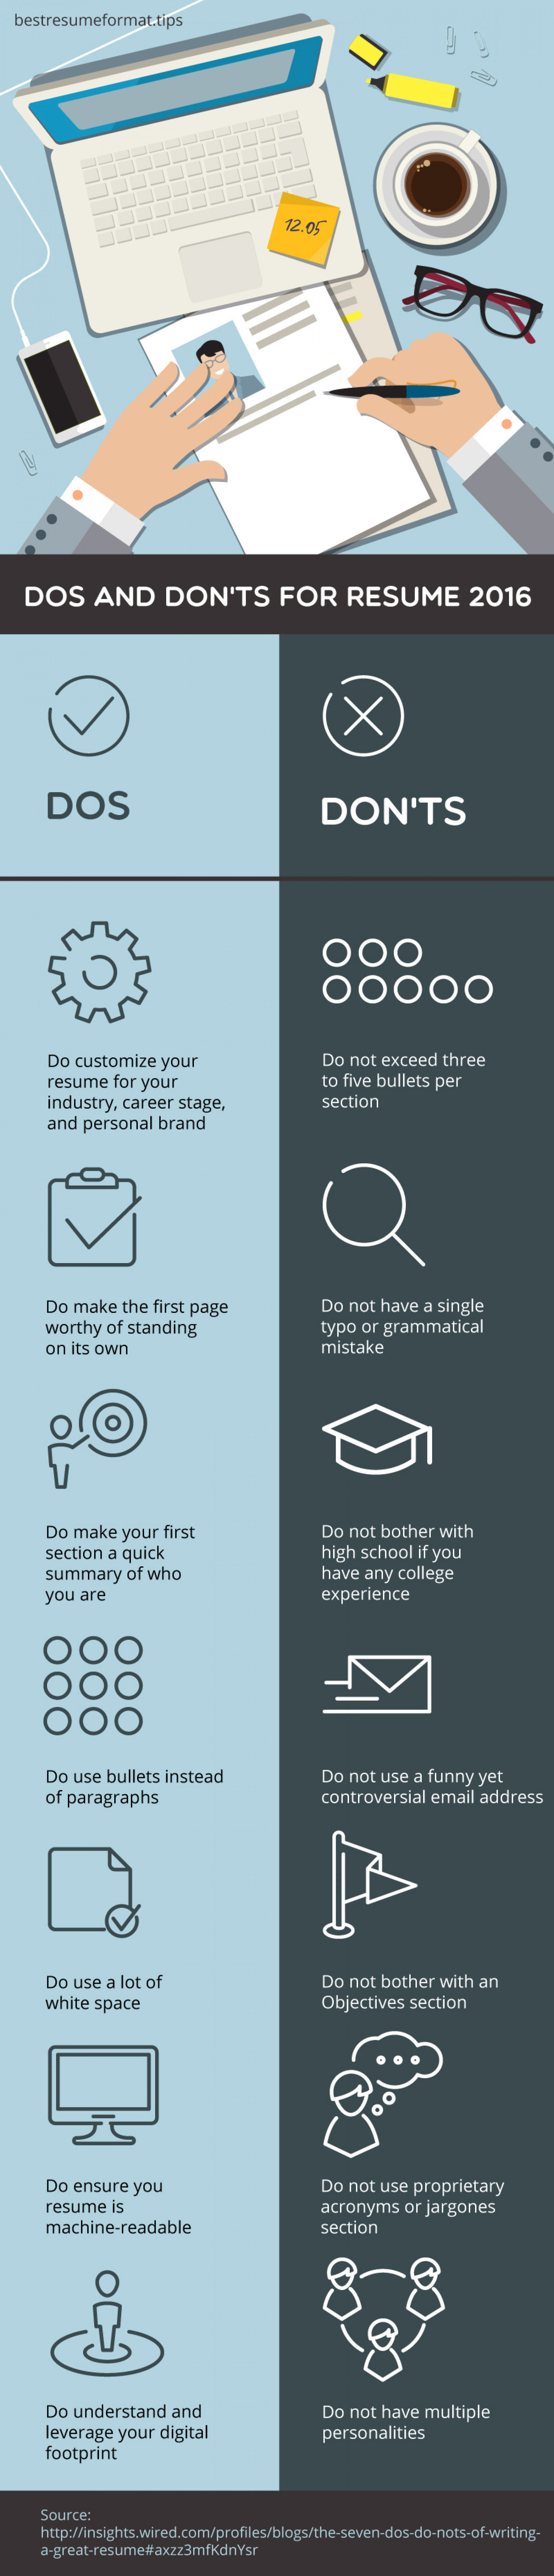 best resume format ly best resume format 2016 infographic